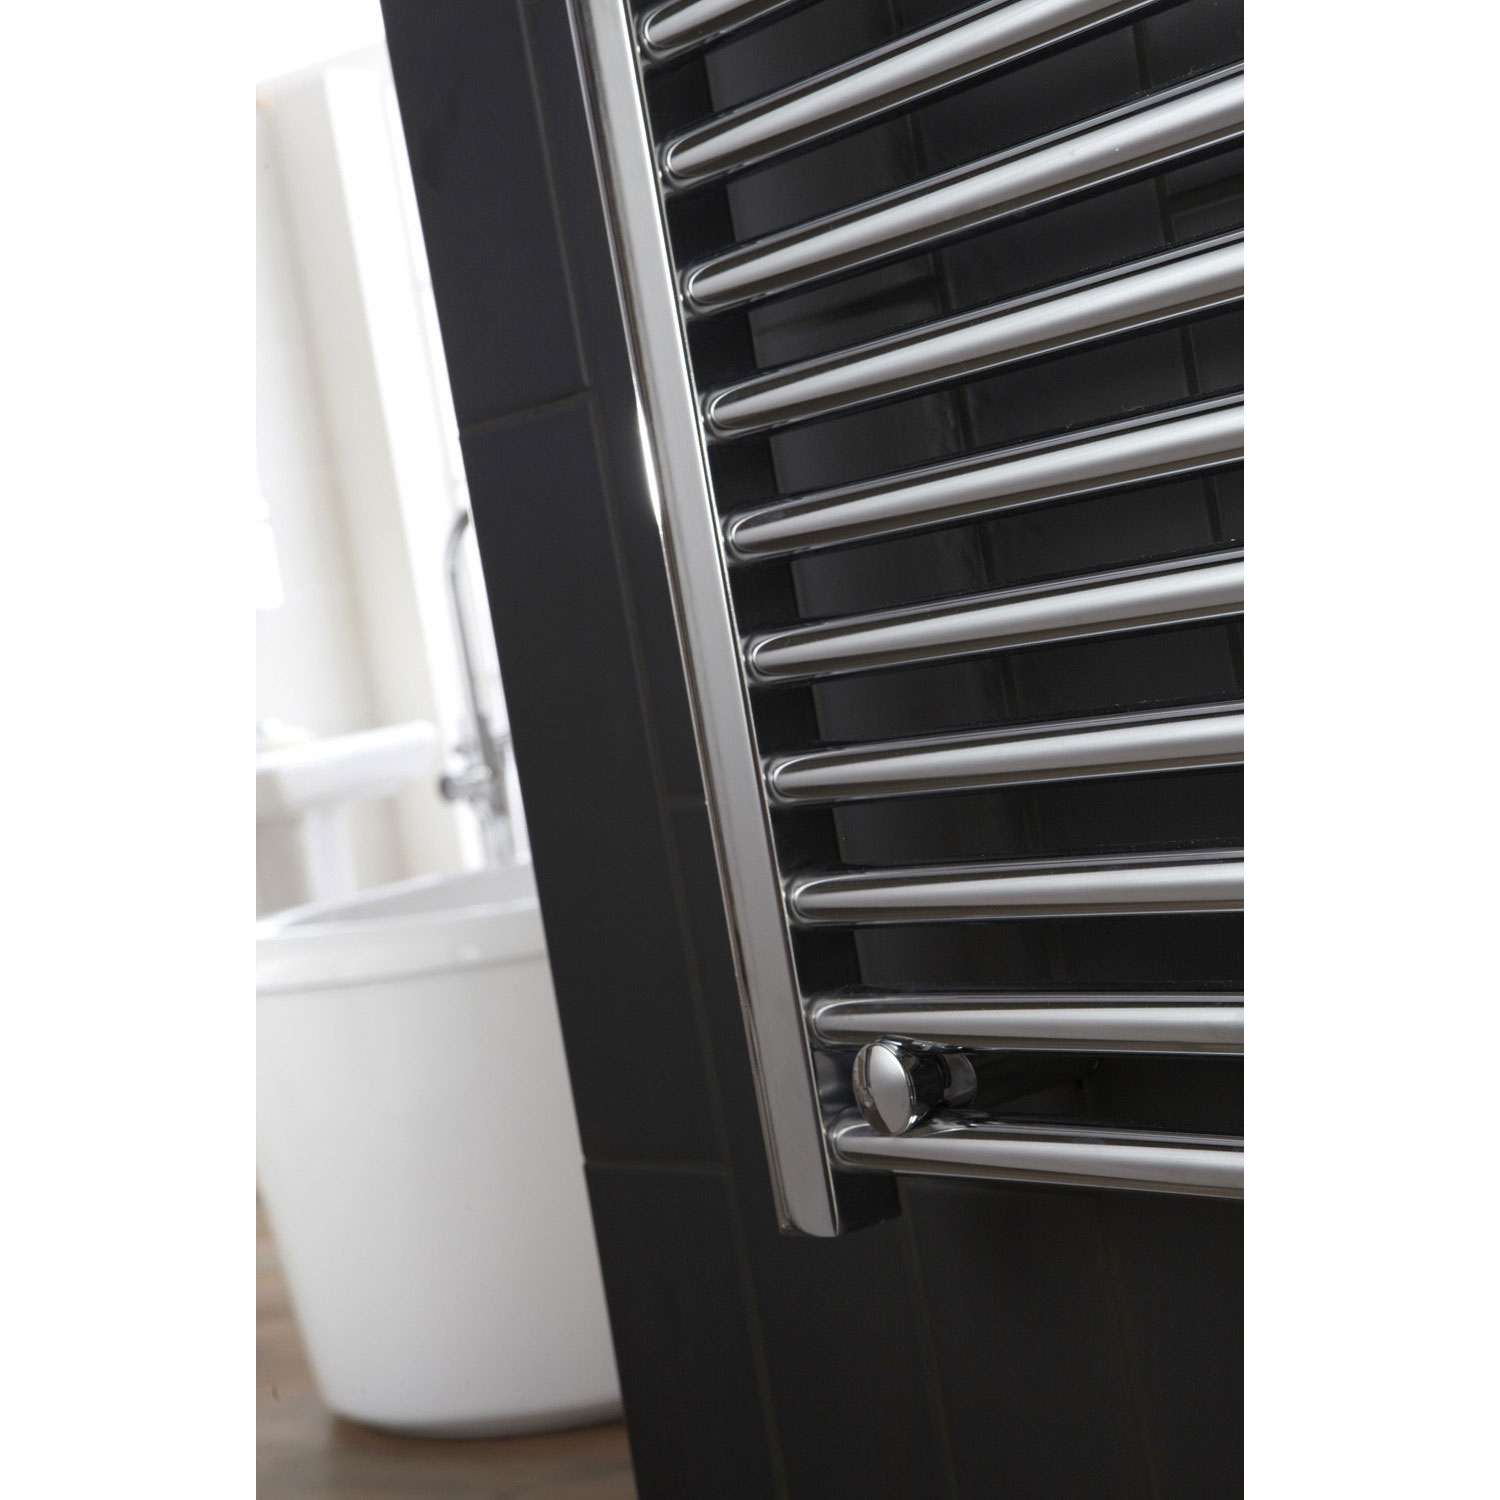 Verona Flat Designer Heated Towel Rail 1100mm H x 600mm W Chrome-2